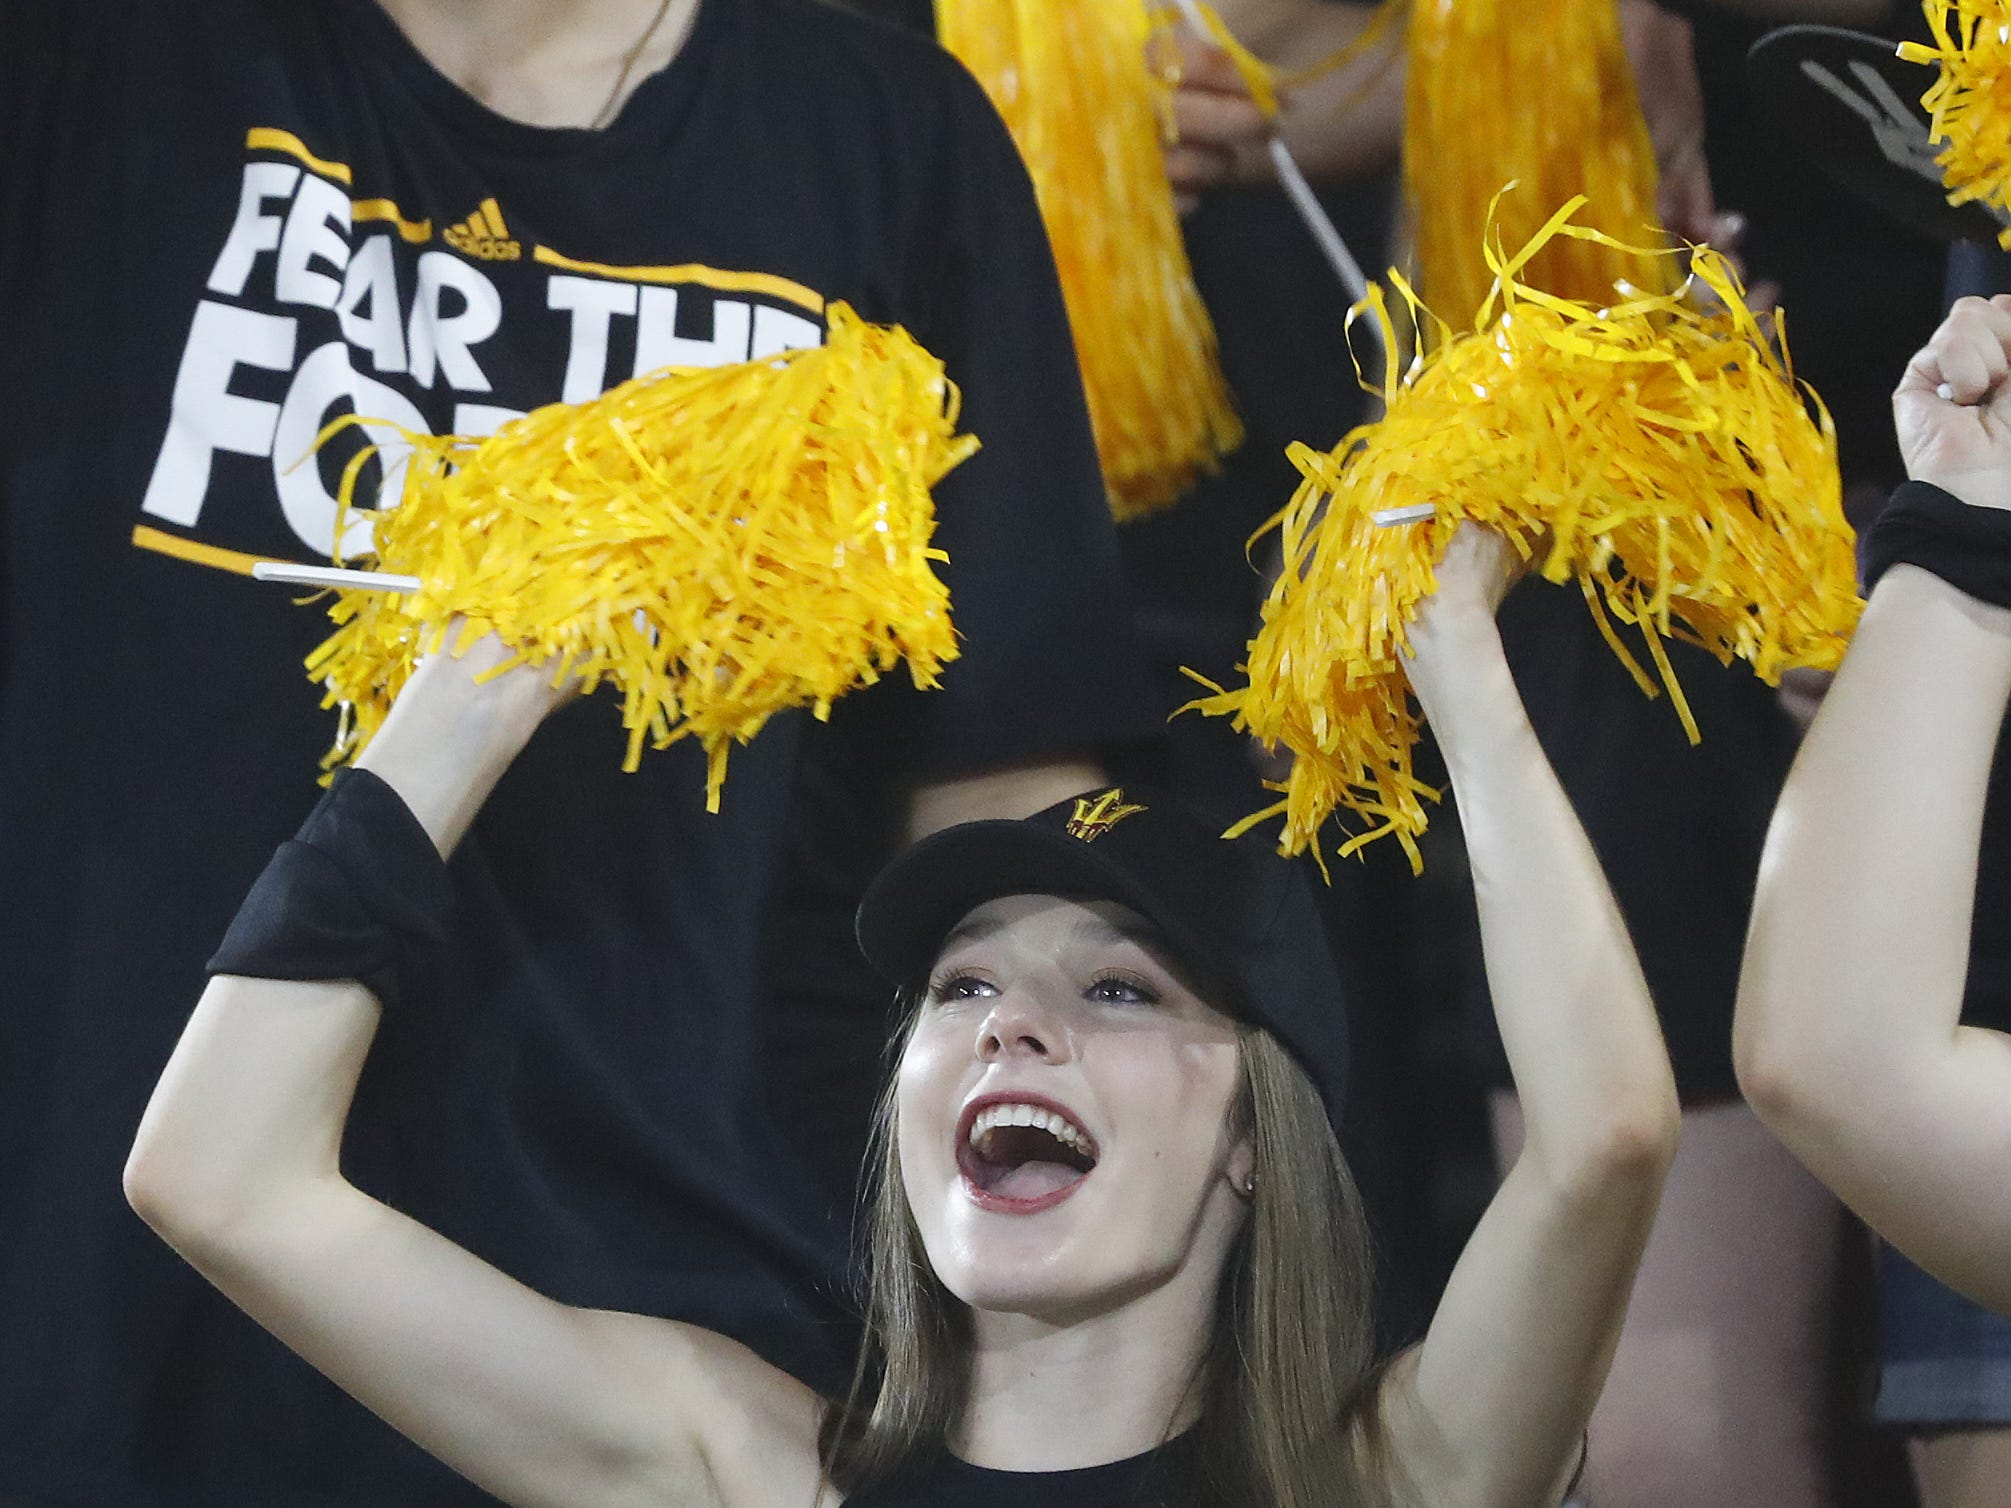 ASU fans cheer on their team to start the game against Michigan State during the first quarter at Sun Devil Stadium in Tempe, Ariz. on Sept. 8, 2018.